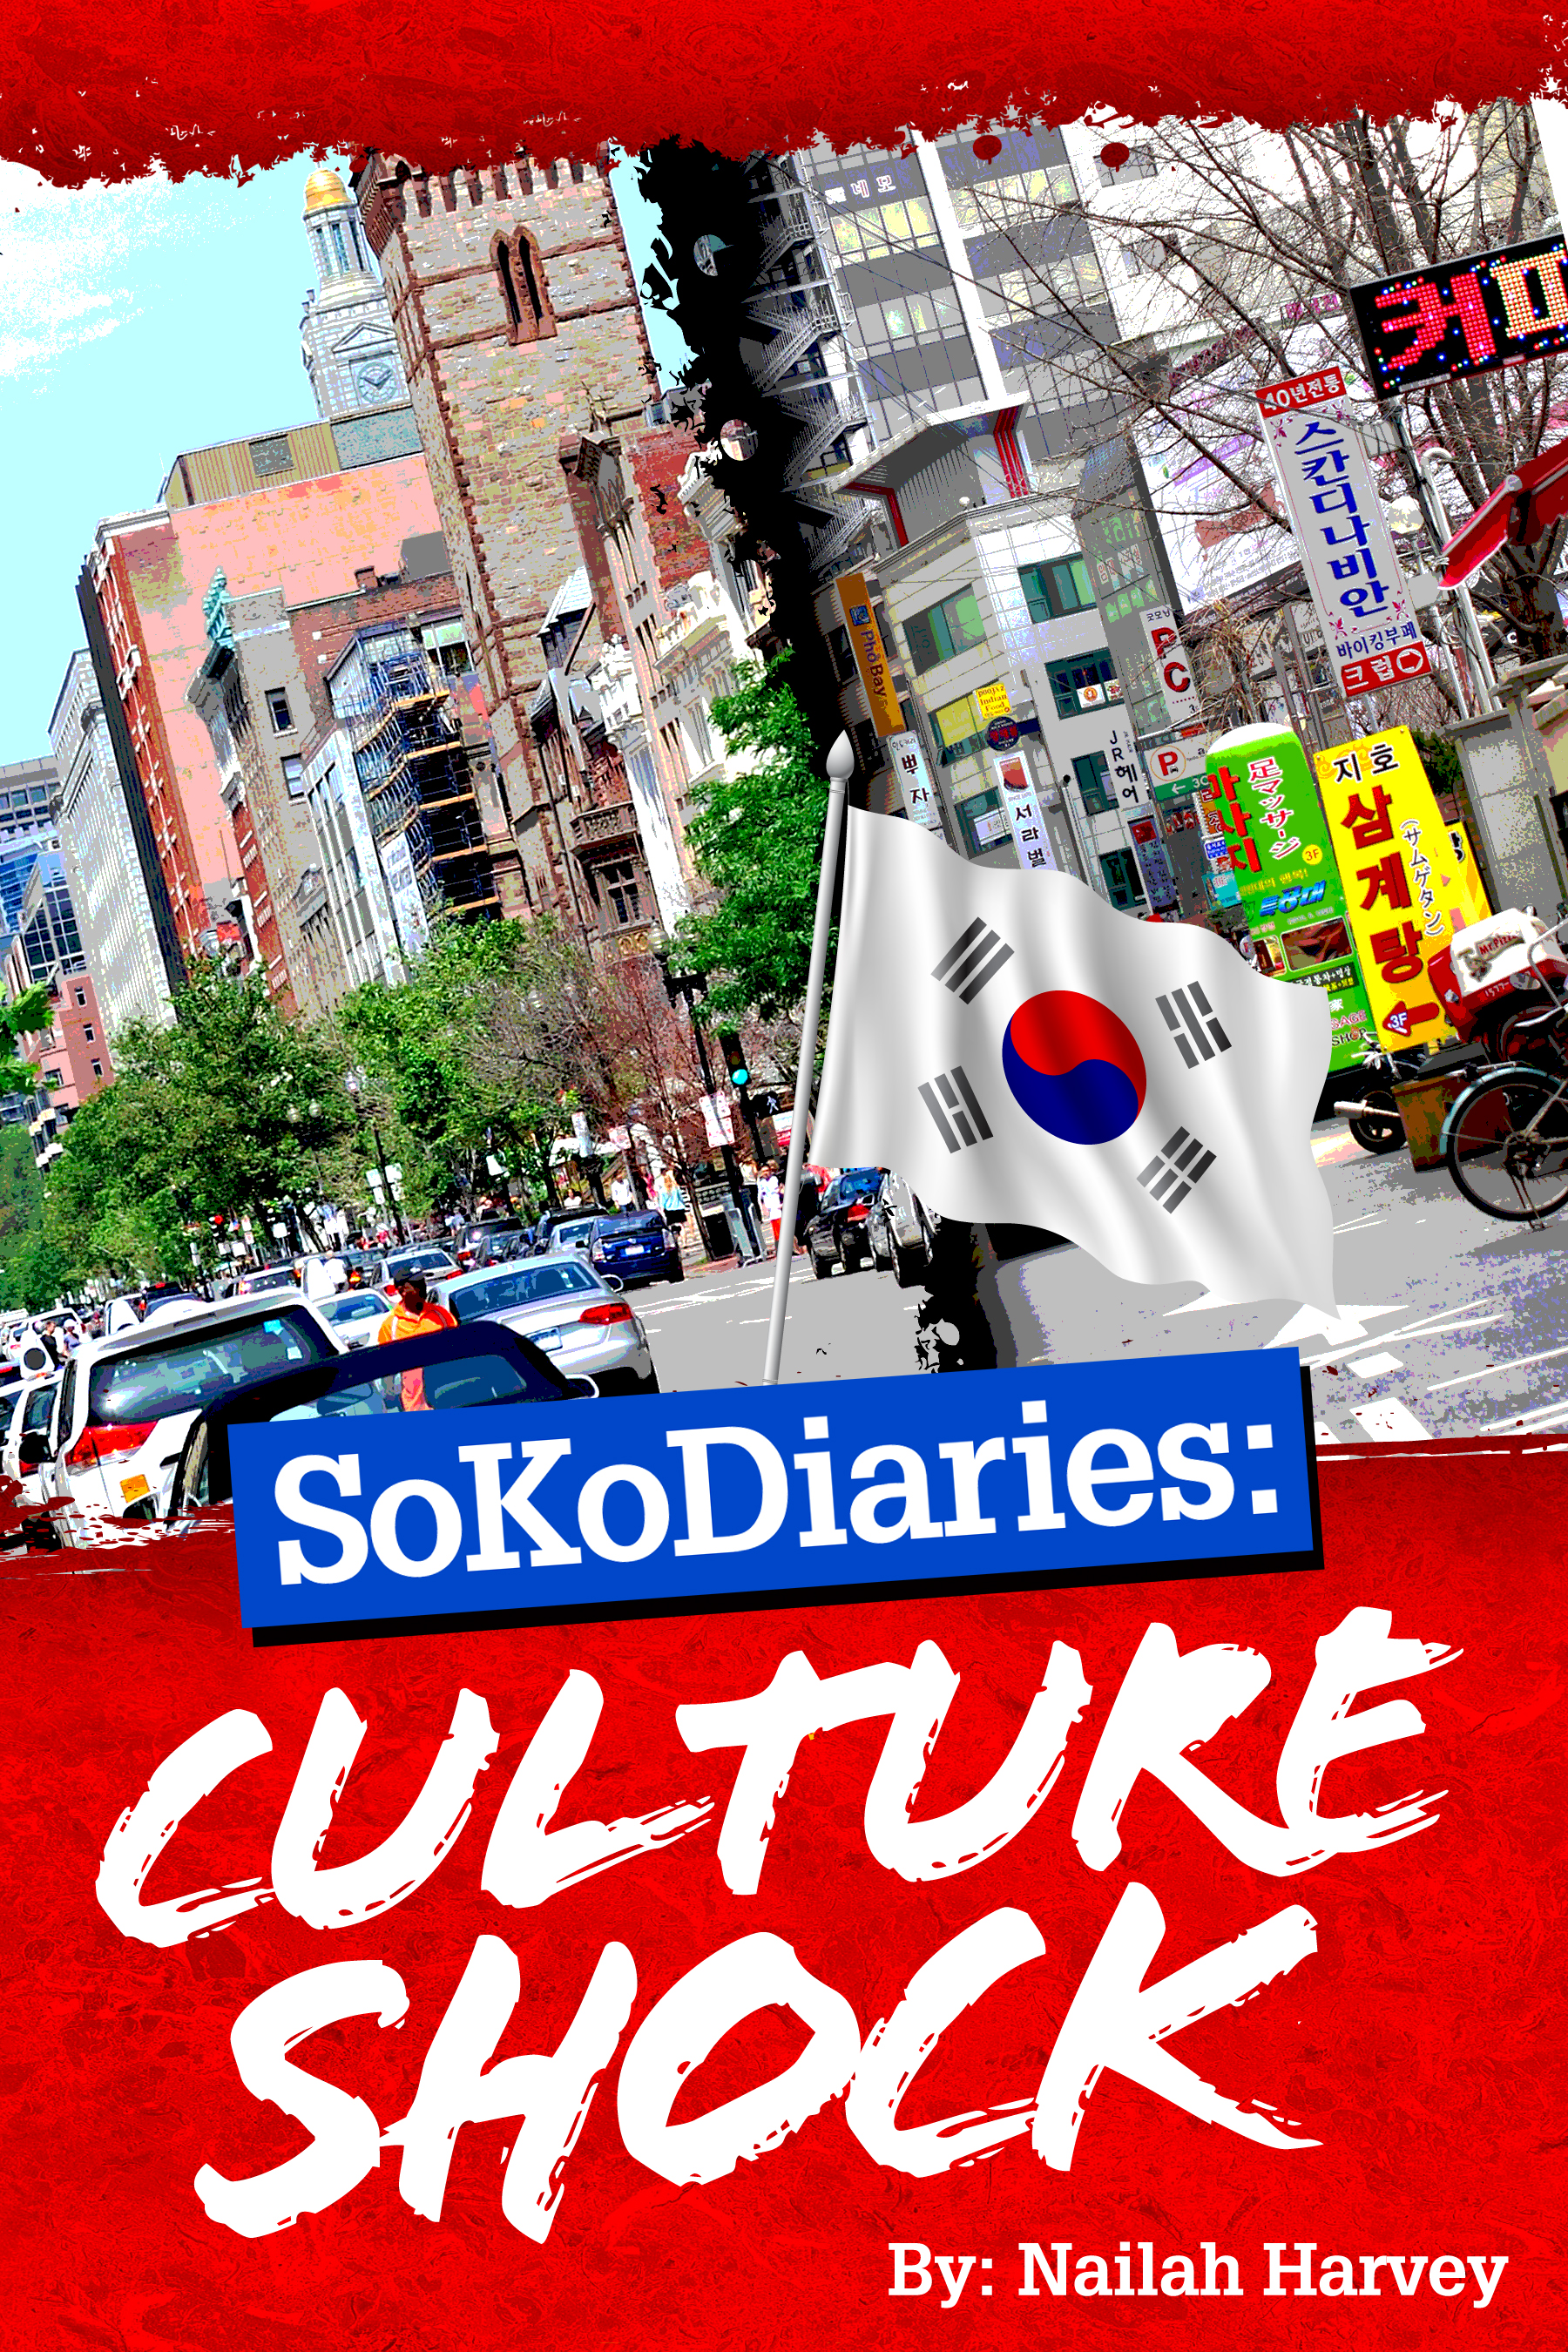 SoKoDiares Culture Shock about South Korea